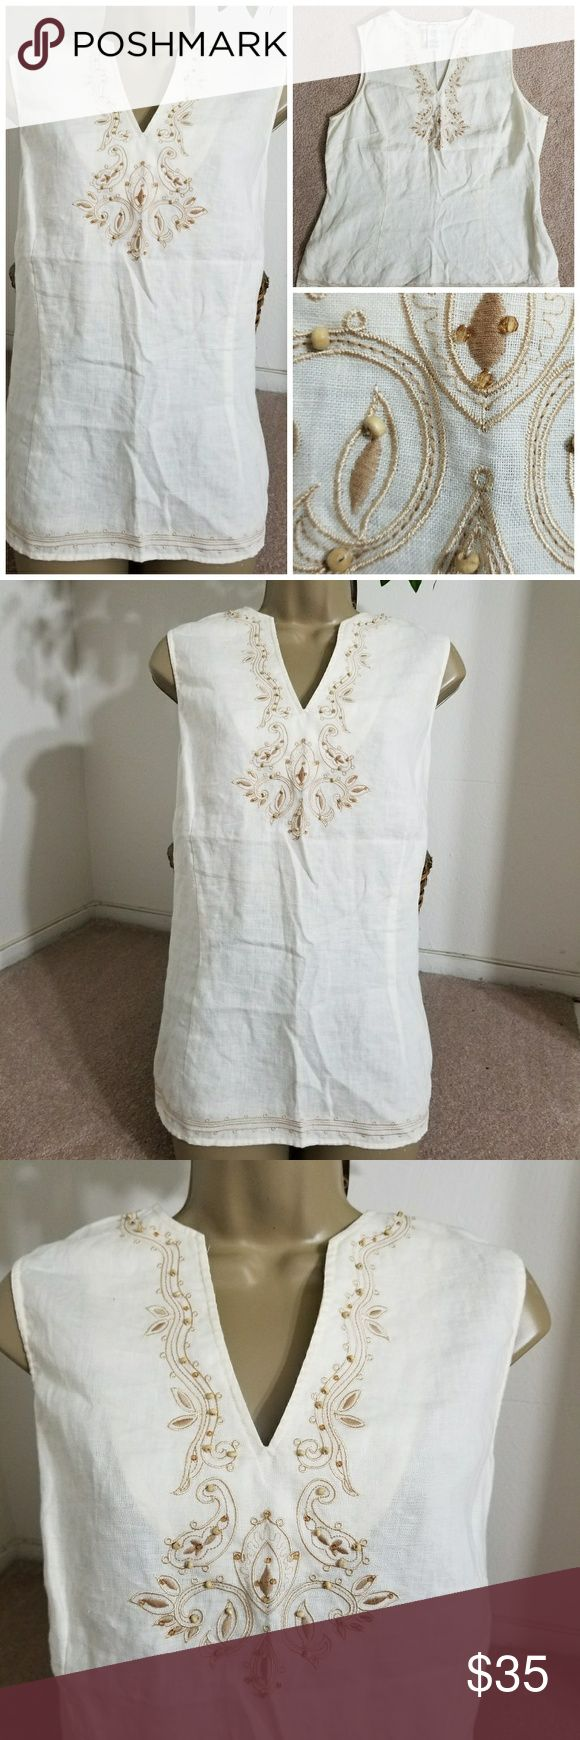 """🆕️Josephine Chaus Linen Blouse Brand: Josephine Chaus  Size: 16 100% Linen  Color: Natural Ivory Retail: $69  Brand new without tags. The only flaw is shown in the last picture. It was purchased this way. It can easily be fixed however it is hardly noticeable and does not affect wear. Price reflects this minor flaw.  Zips on the side  Measurements are approximate Length: 26.5"""" Chest: 42"""" Waist: 39"""" Zipper Length: 9.5"""" Josephine Chaus Tops Blouses"""